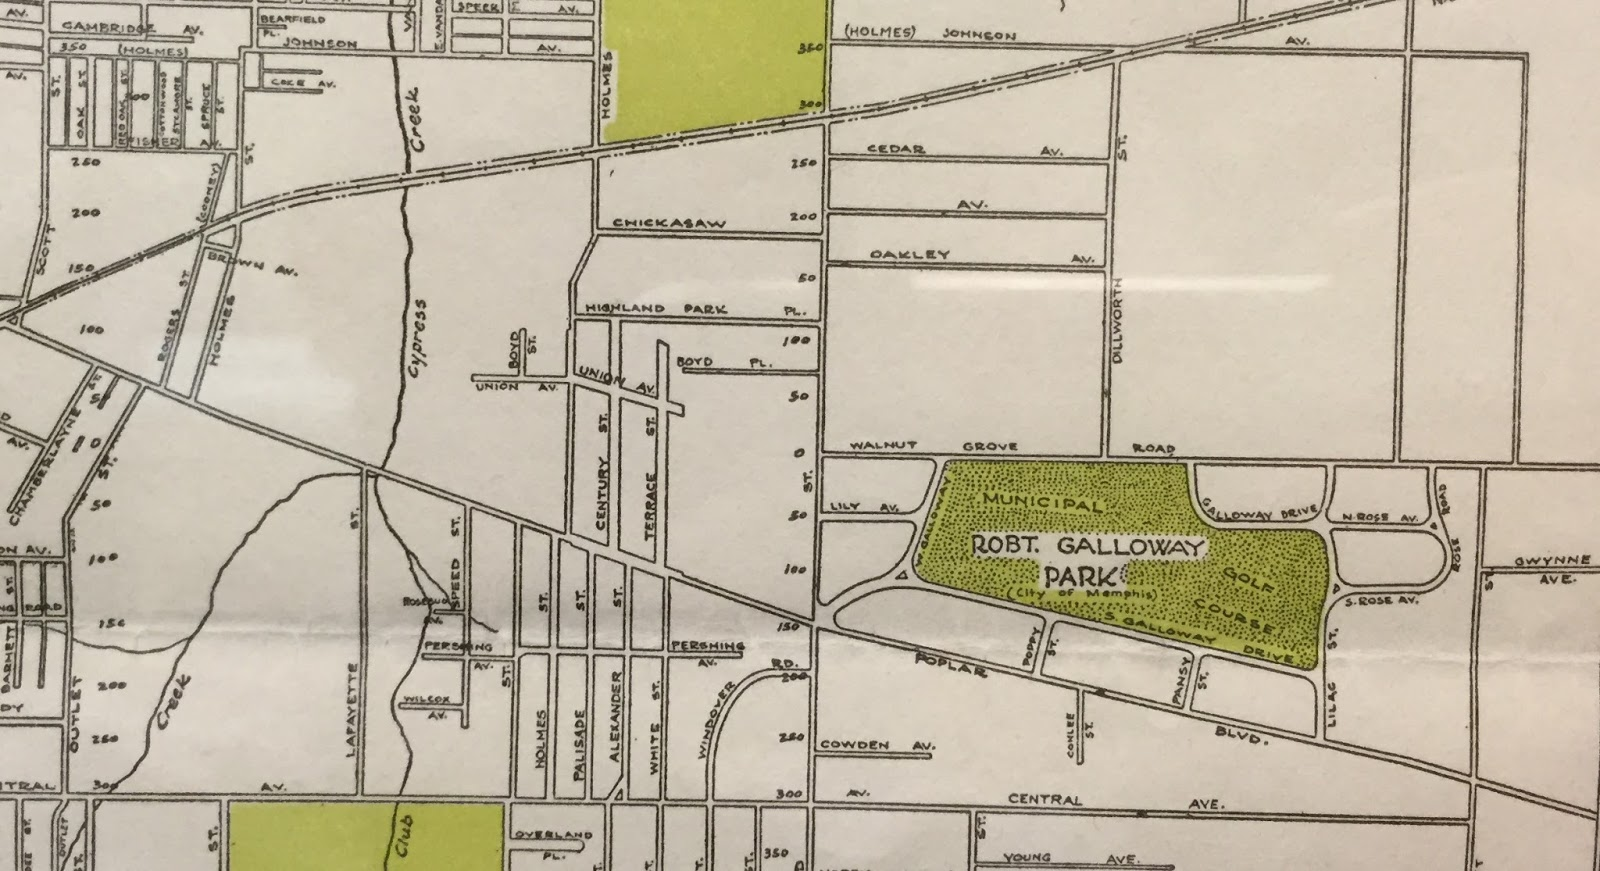 this map from the mid 1920s shows the red acres subdivision centered around the robert galloway park but no chickasaw gardens or hedgemoor